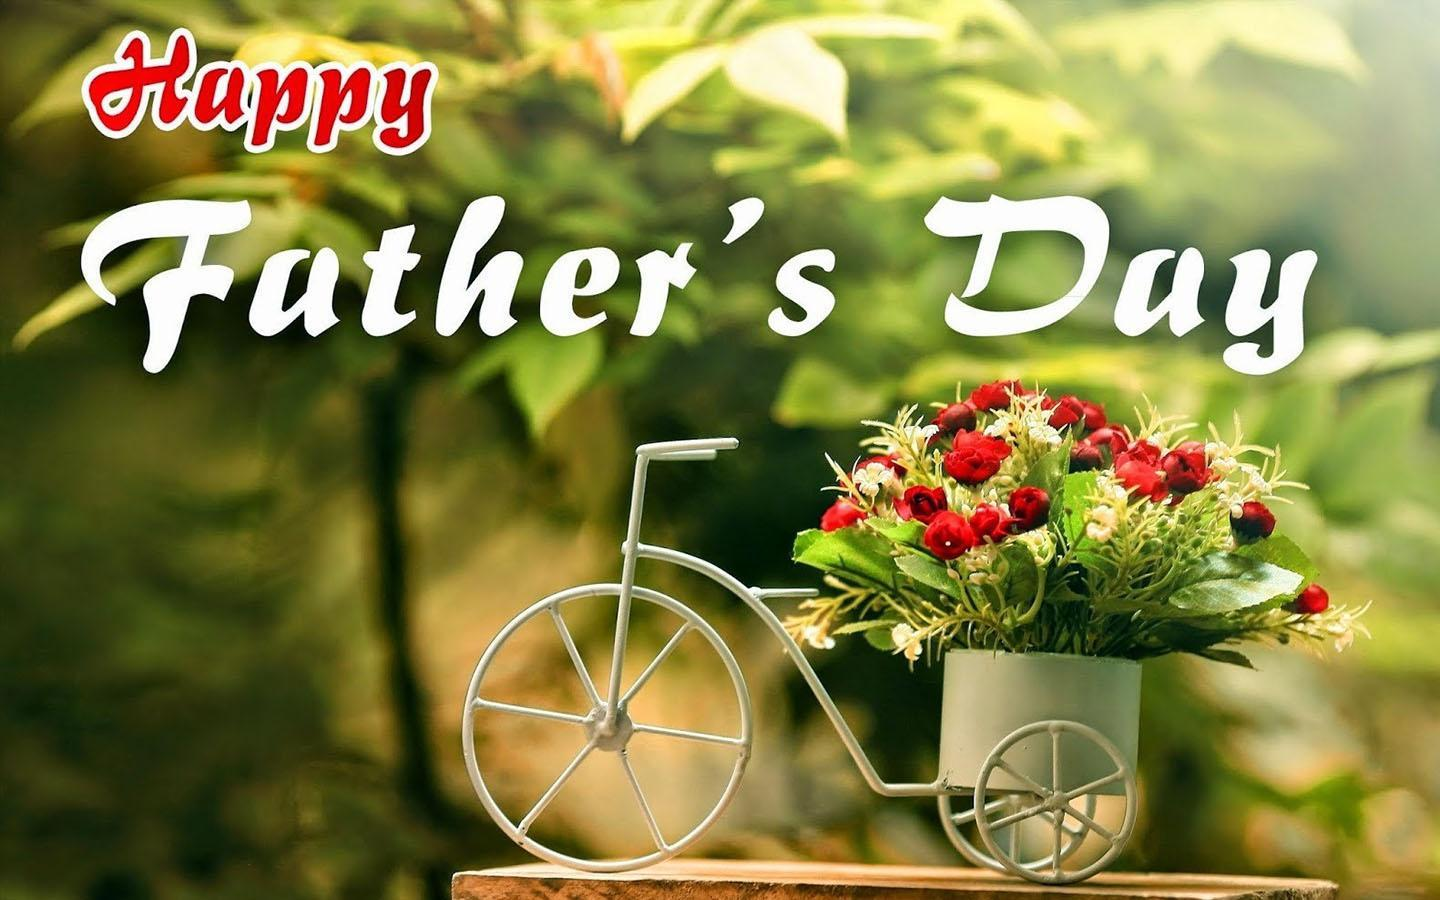 Fathers Day Wallpaper for Android   APK Download 1440x900